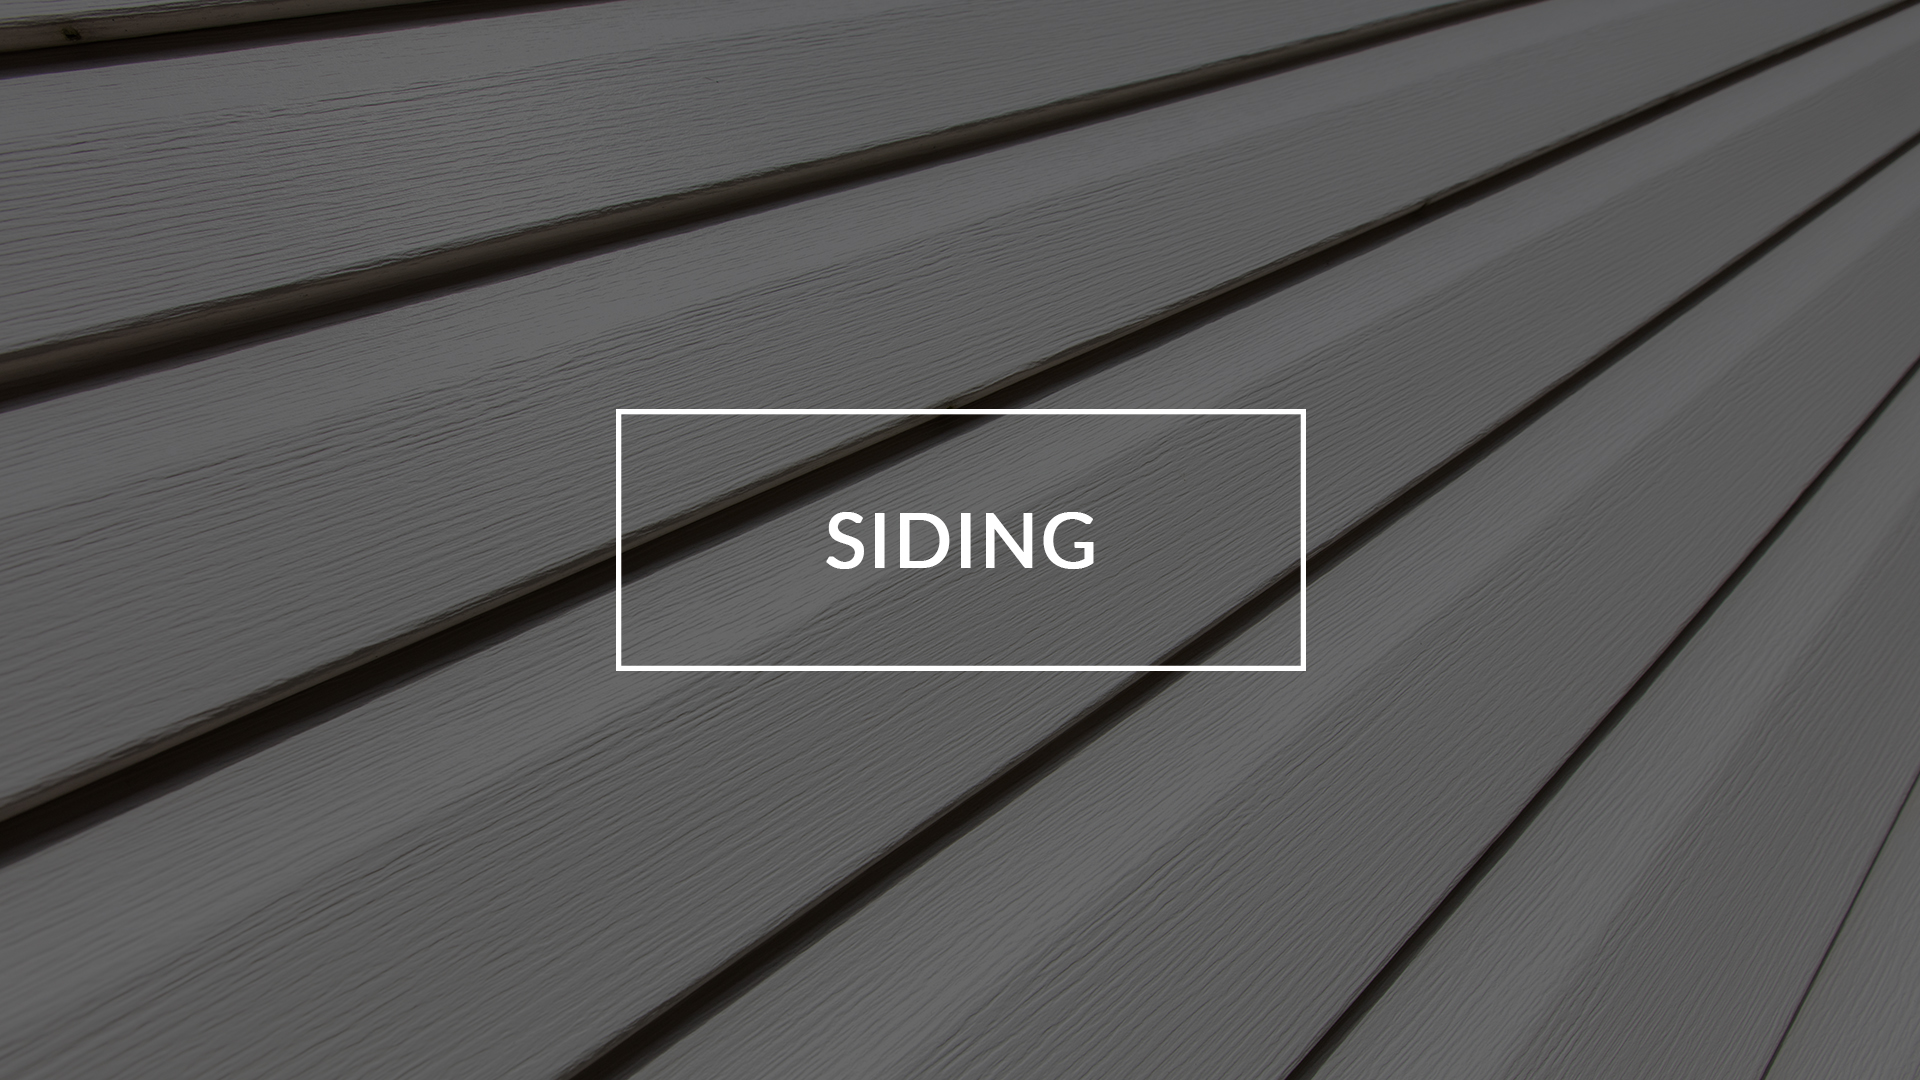 New siding not only gives you a home you can be proud of, but protects It from the elements and enhancements its curb appeal.